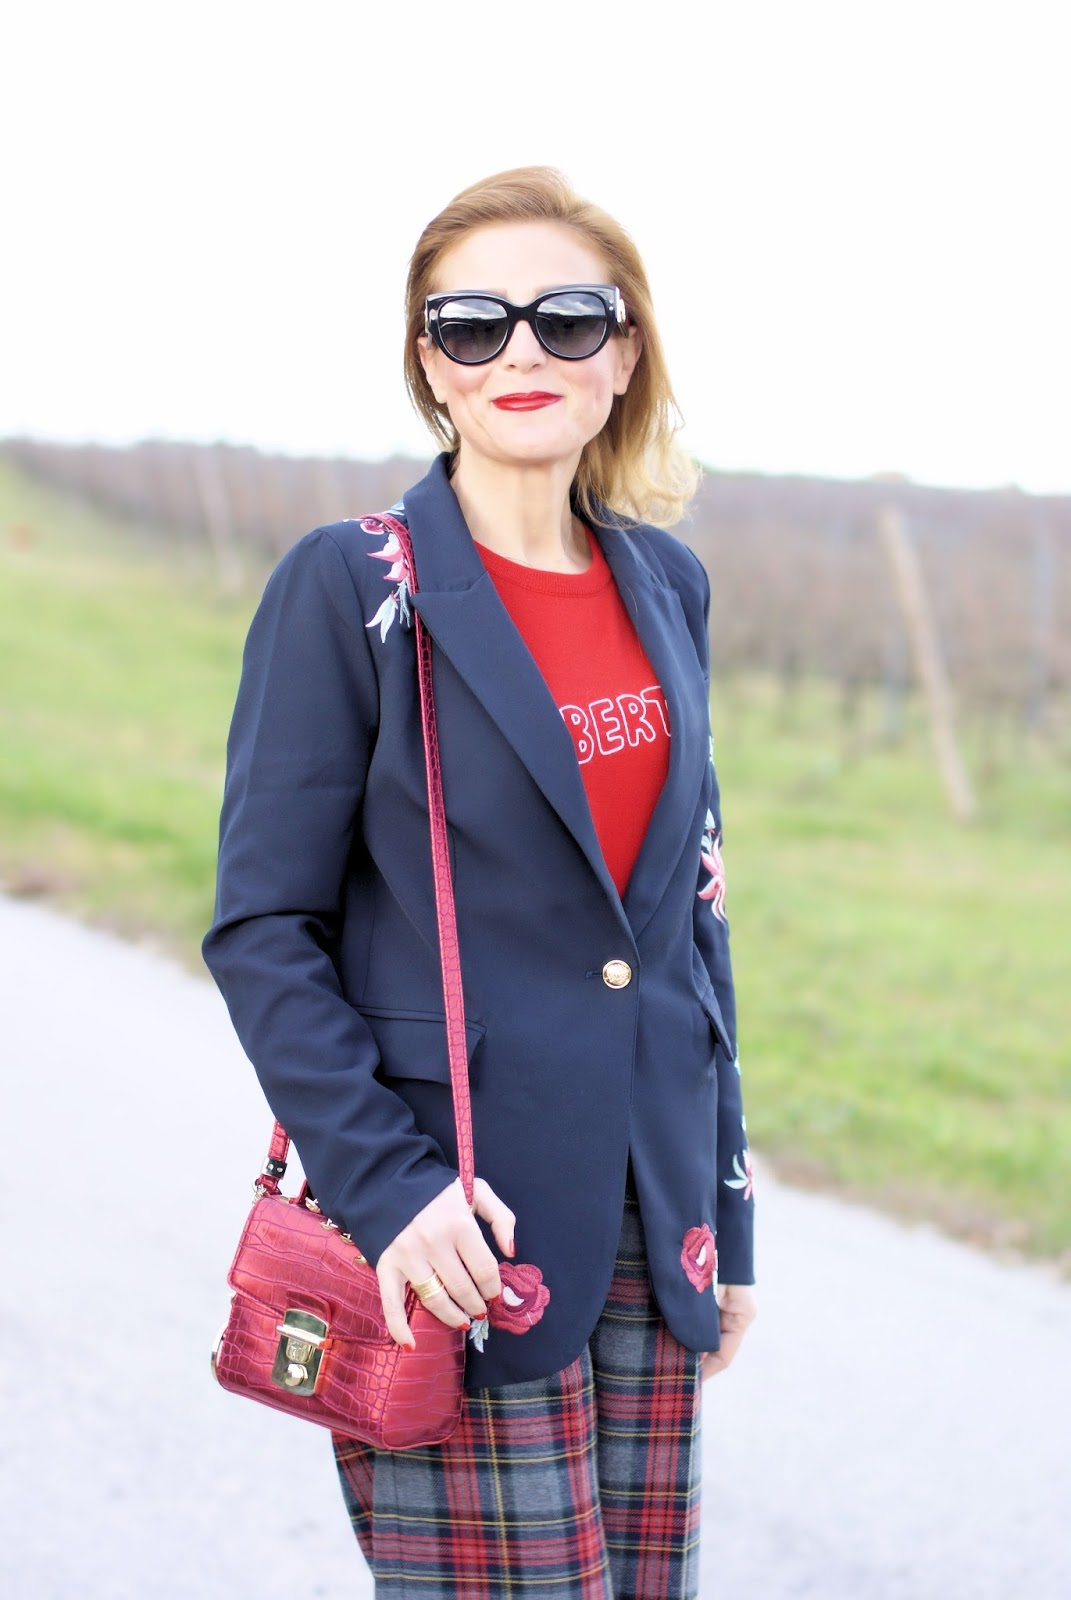 Zaful embroidered blazer and plaid pants on Fashion and Cookies fashion blog, fashion blogger style